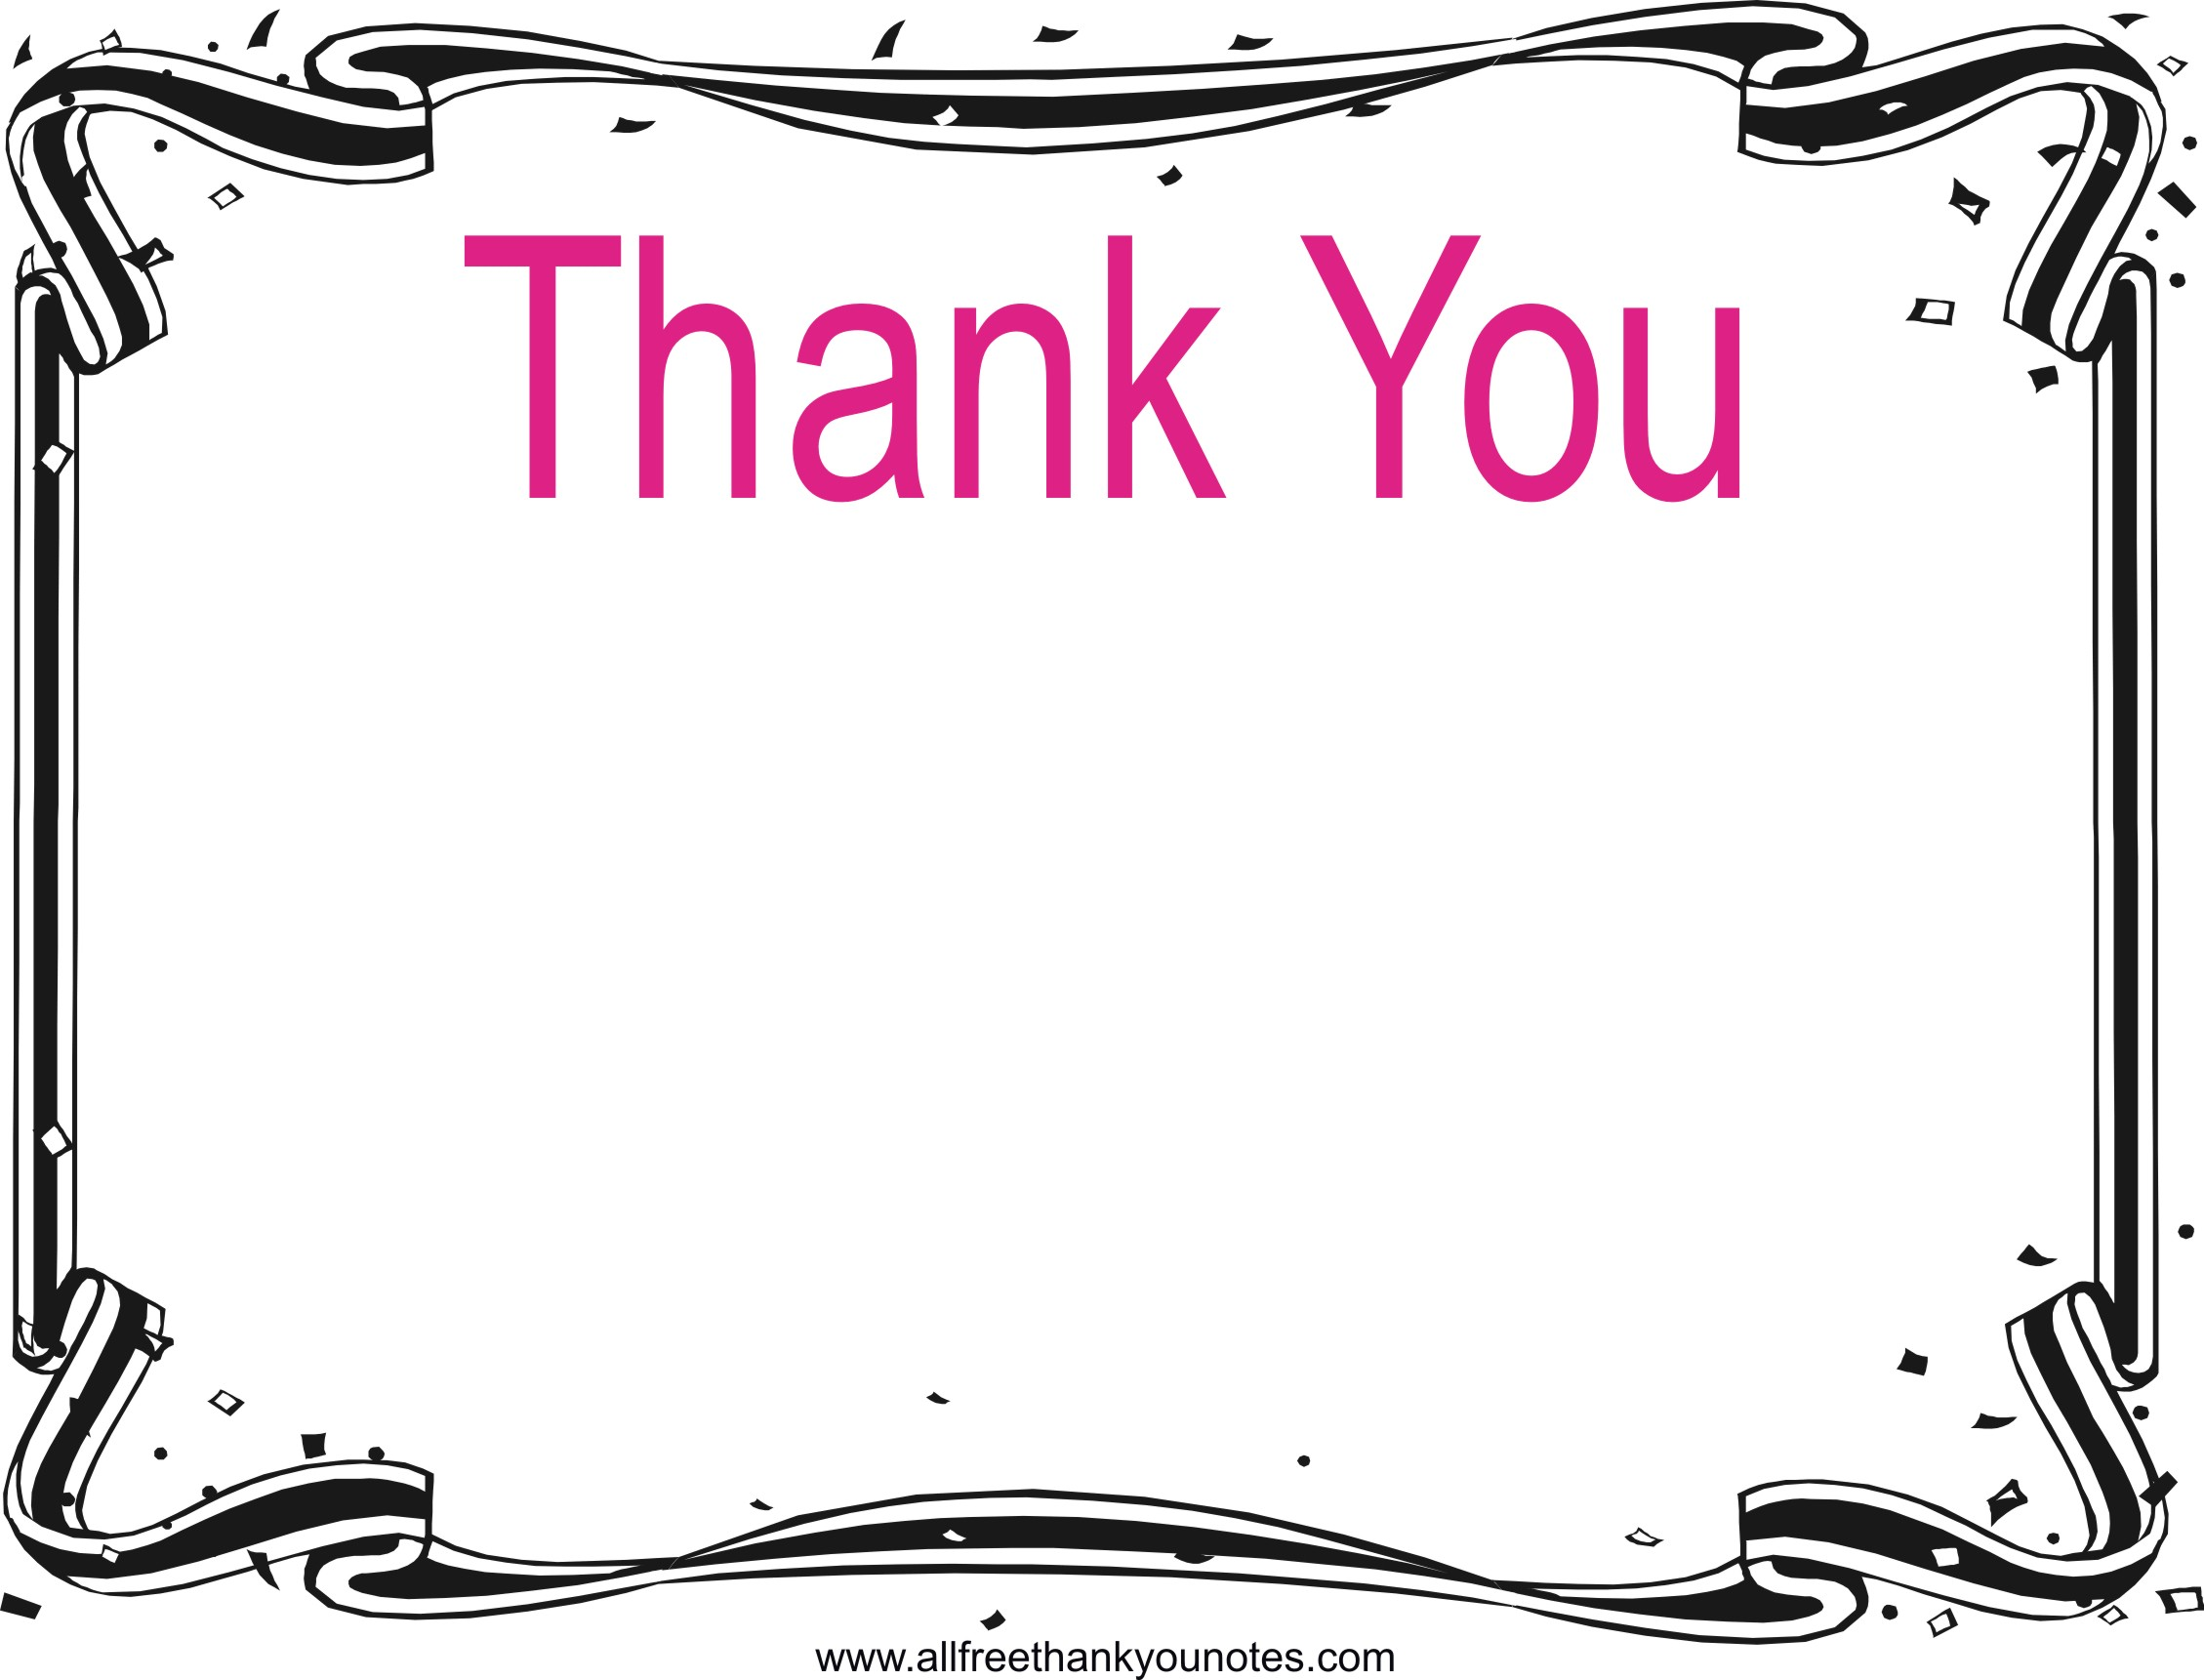 Thank you black and white thank you border clip art.